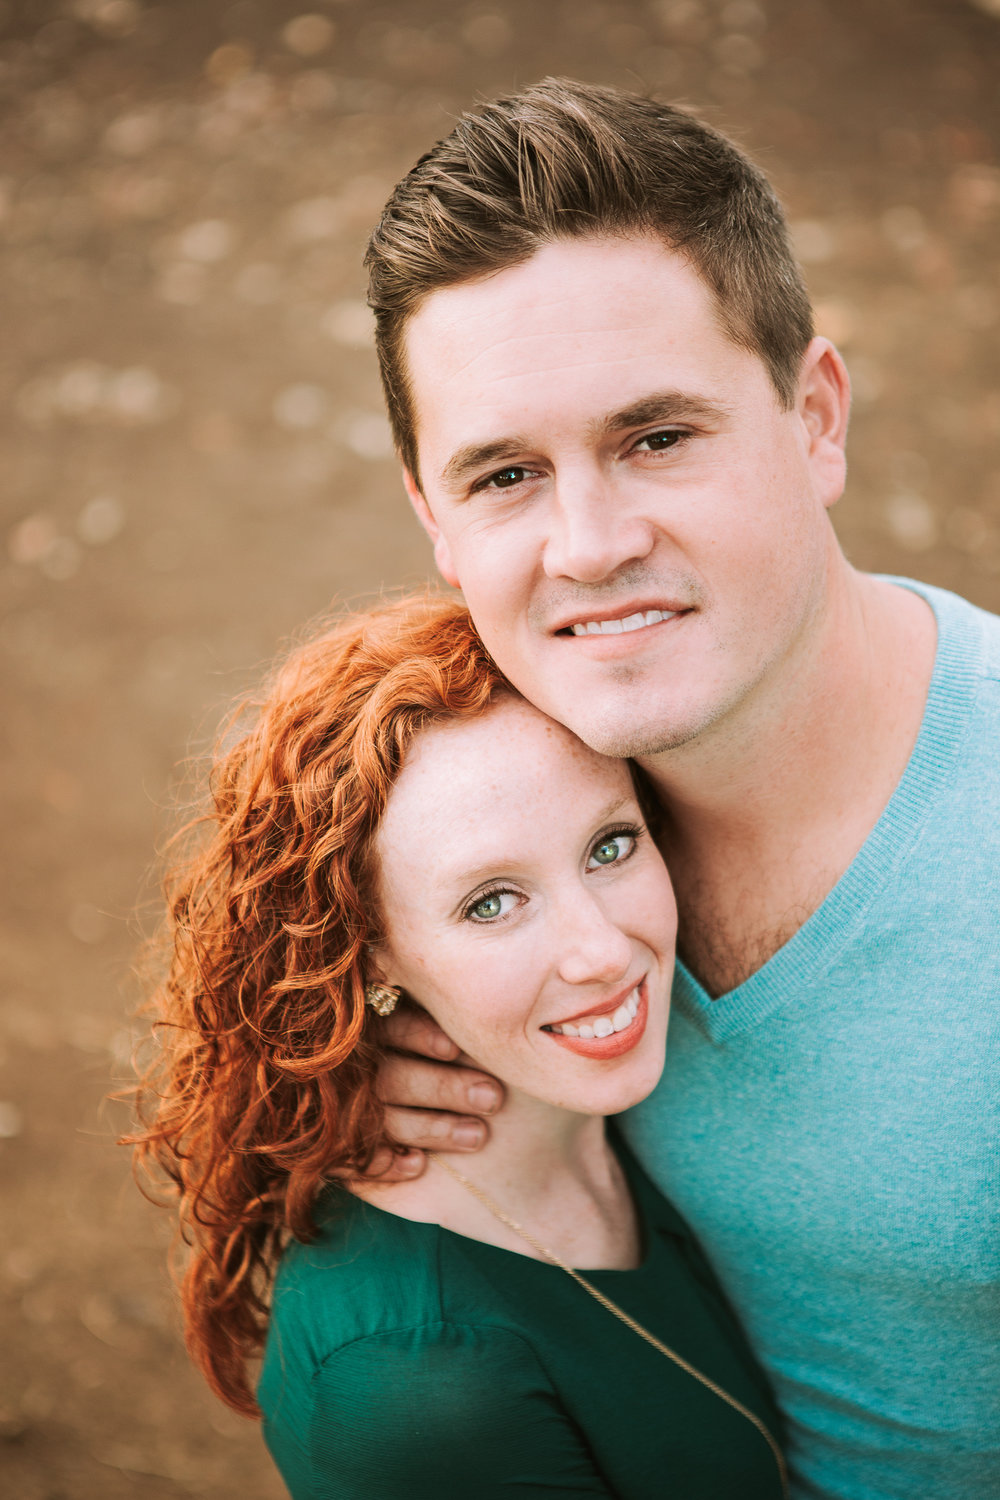 Richmond Kentucky Engagement Photographer - Ariana Jordan Photography -37.jpg